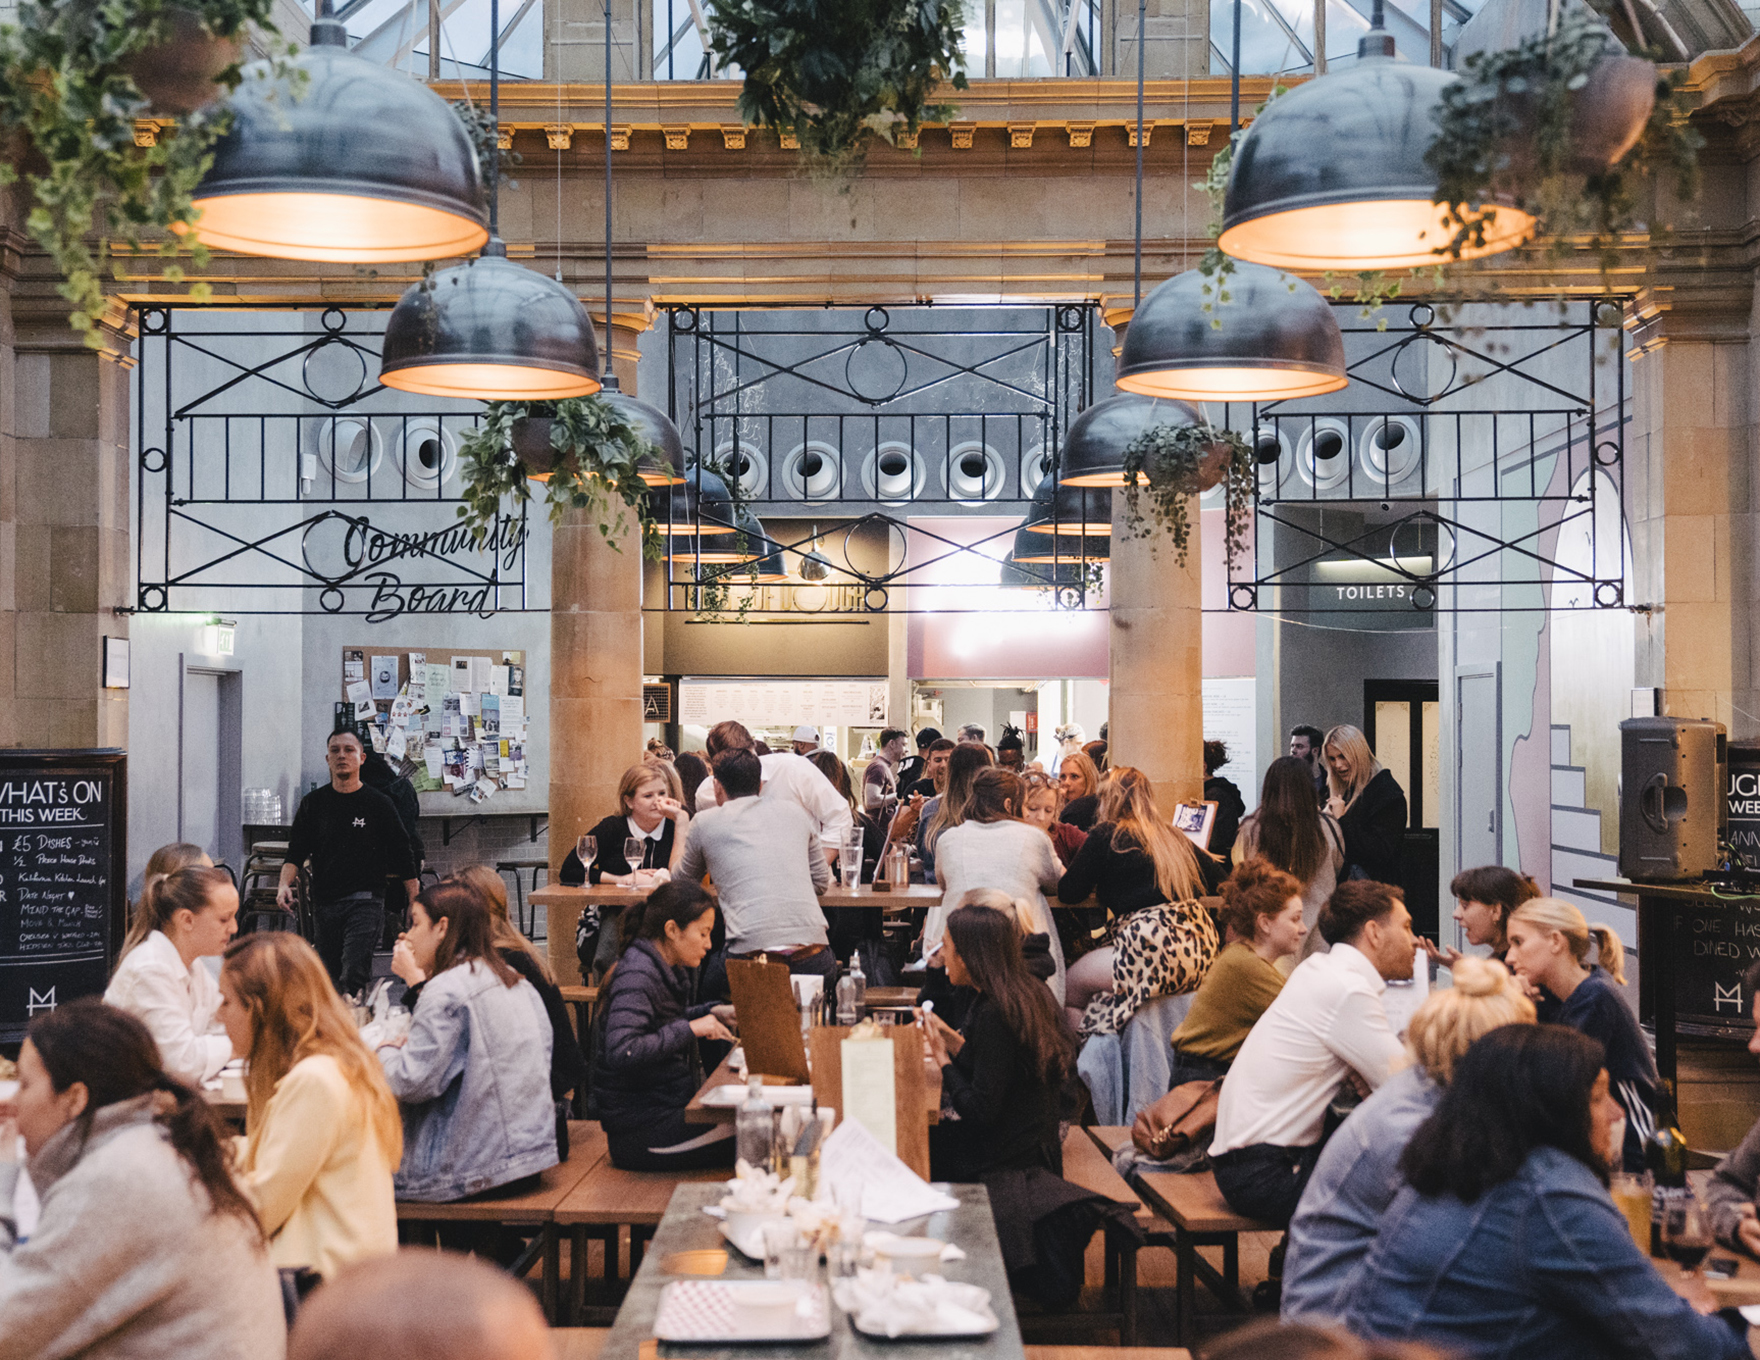 Market Hall Fulham Food Hall Busy With Customers Enjoying Food And Drink L